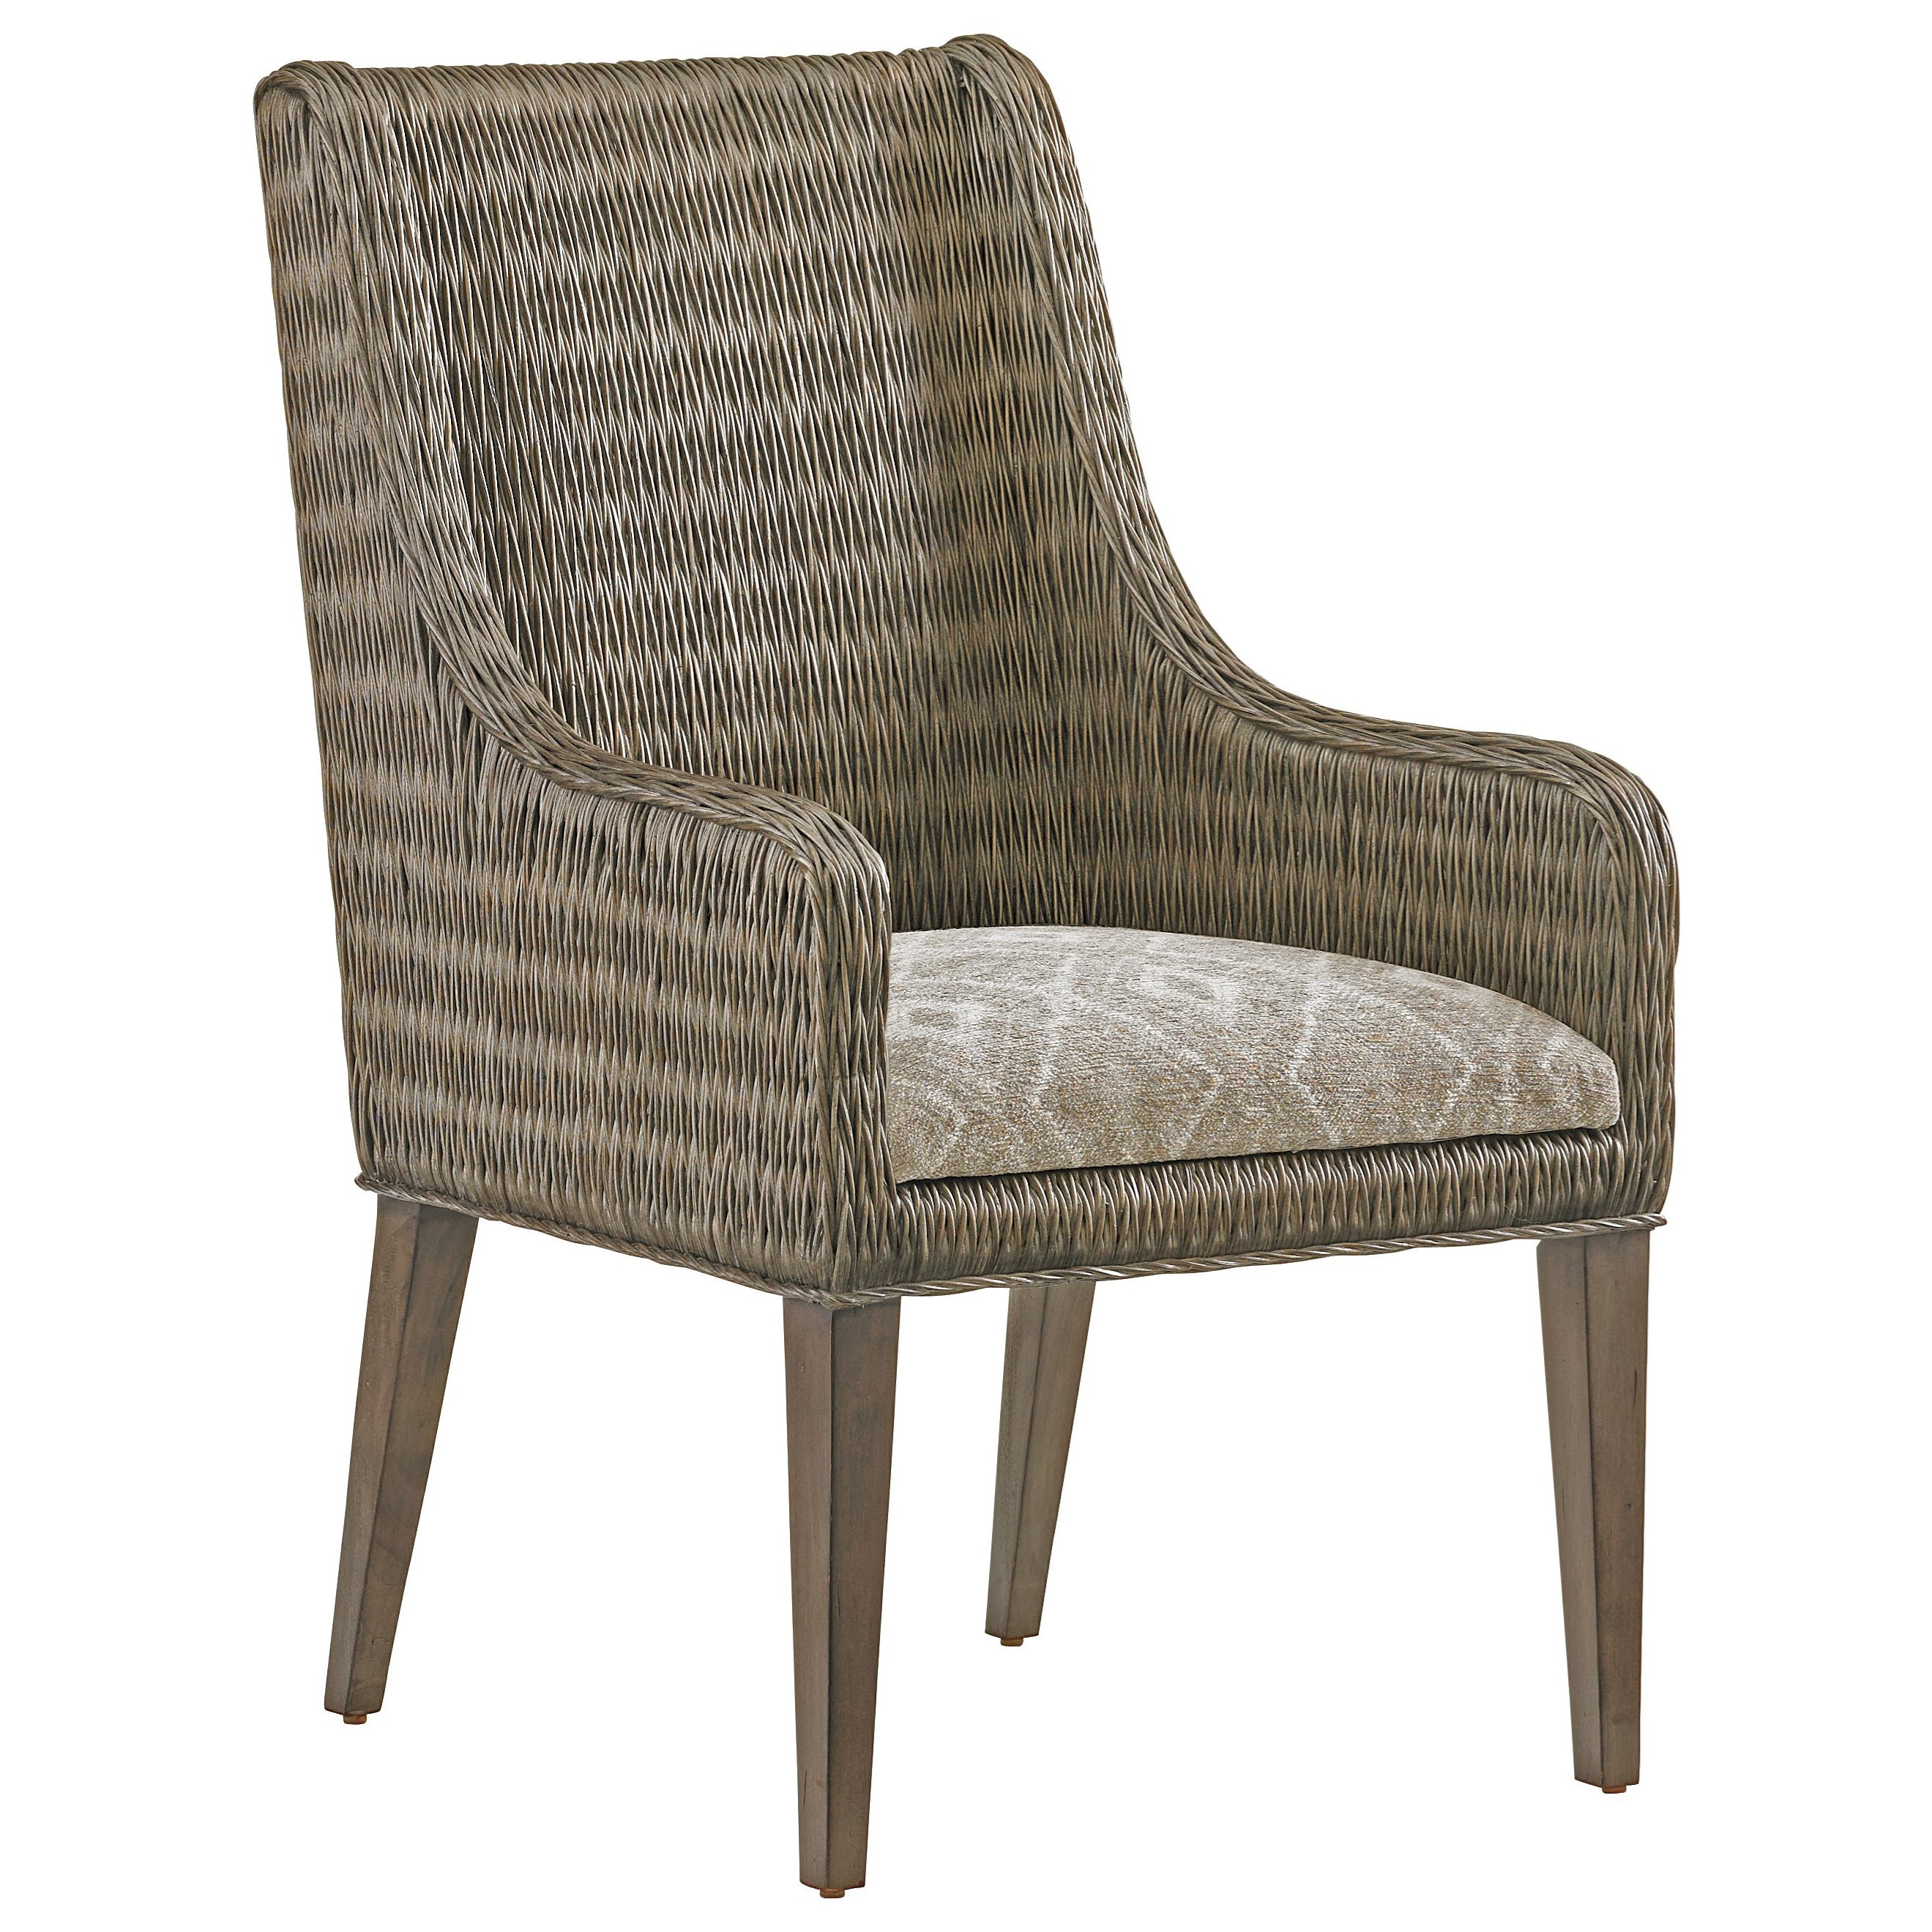 Cypress Point Brandon Woven Arm Chair Custom by Tommy Bahama Home at Baer's Furniture